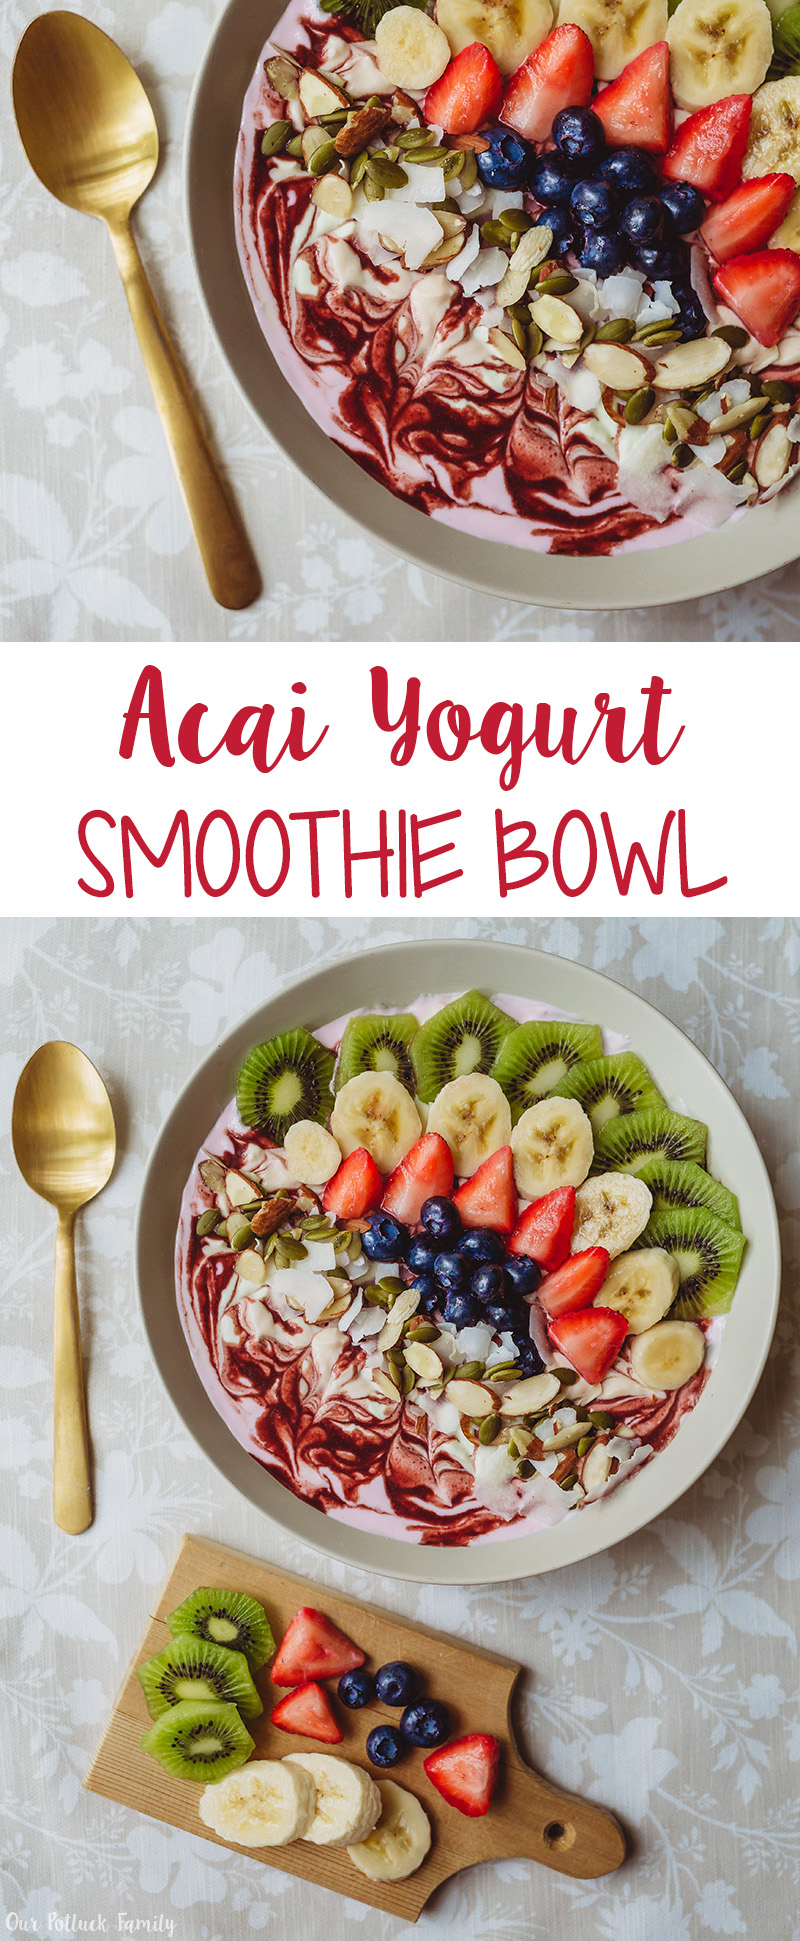 Acai Yogurt Smoothie Bowl